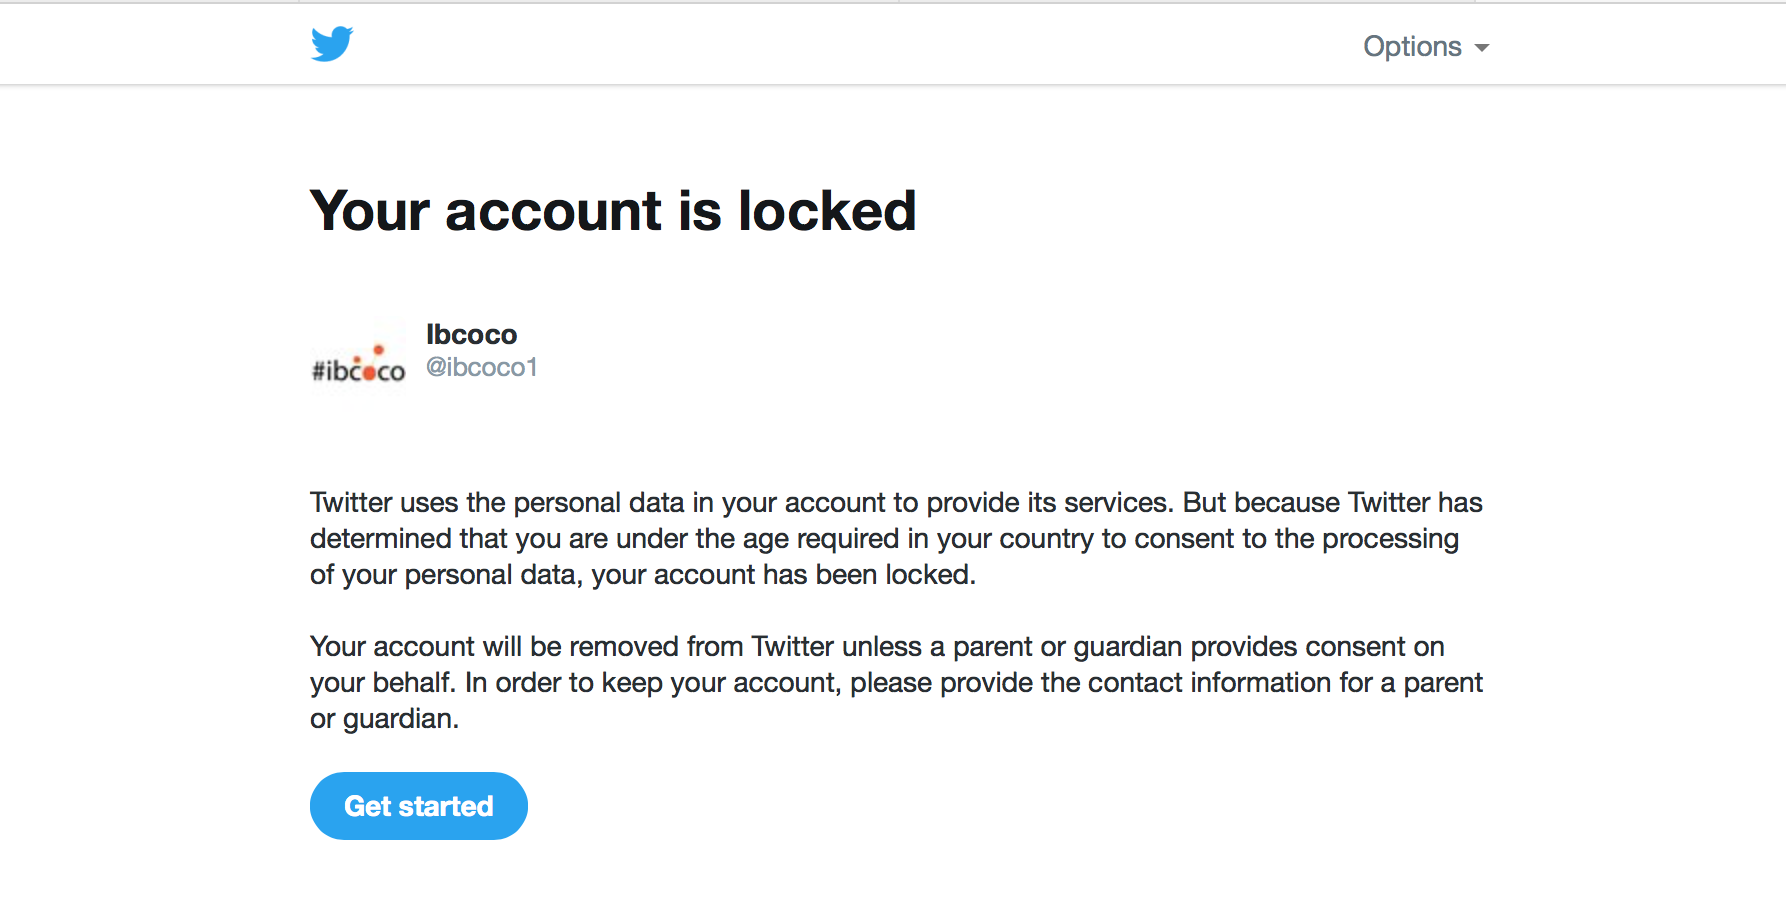 ibcoco1 is locked